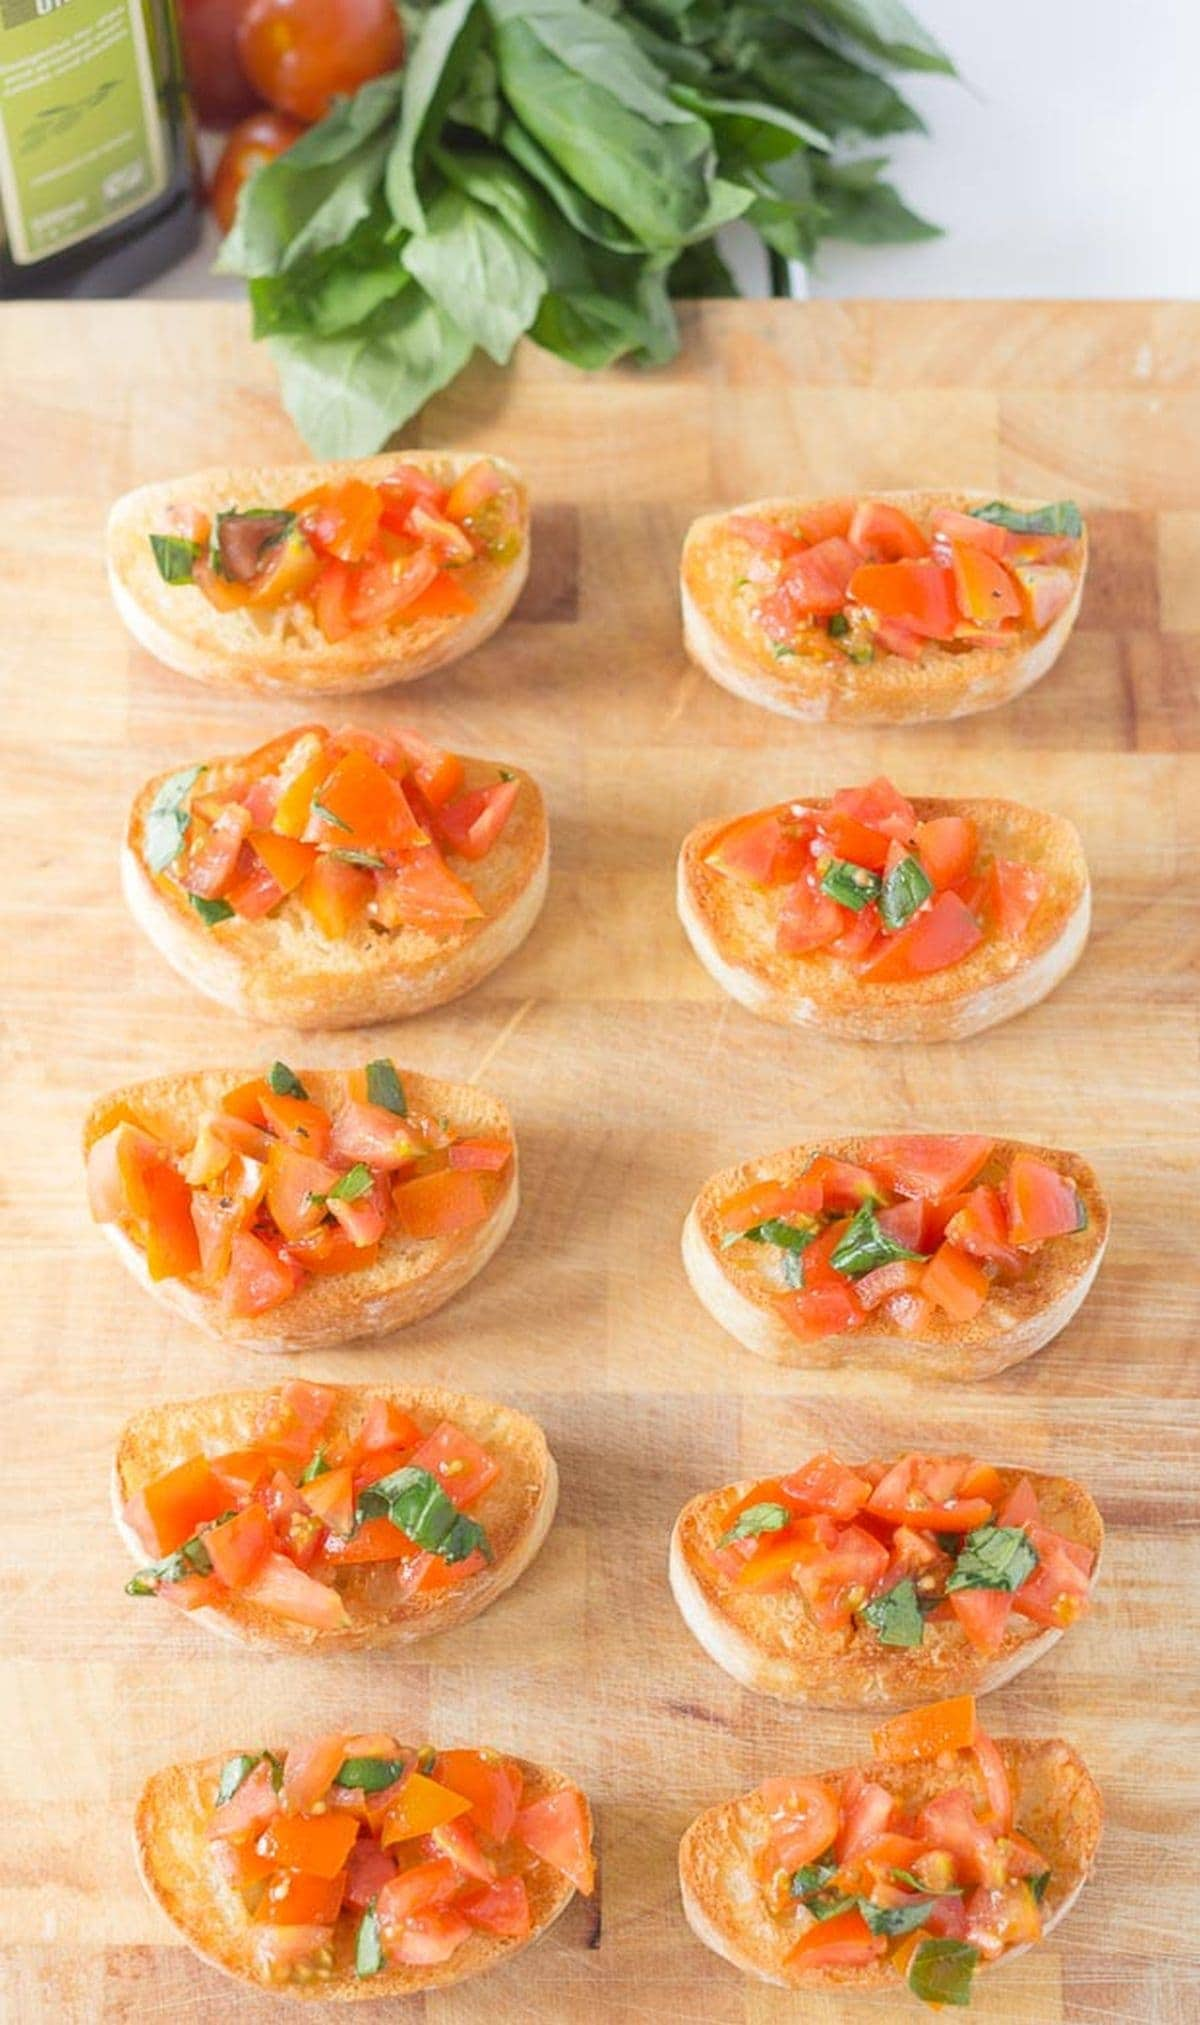 A bread board with 10 slices of mini bruschetta with cherry tomatoes and basil on.